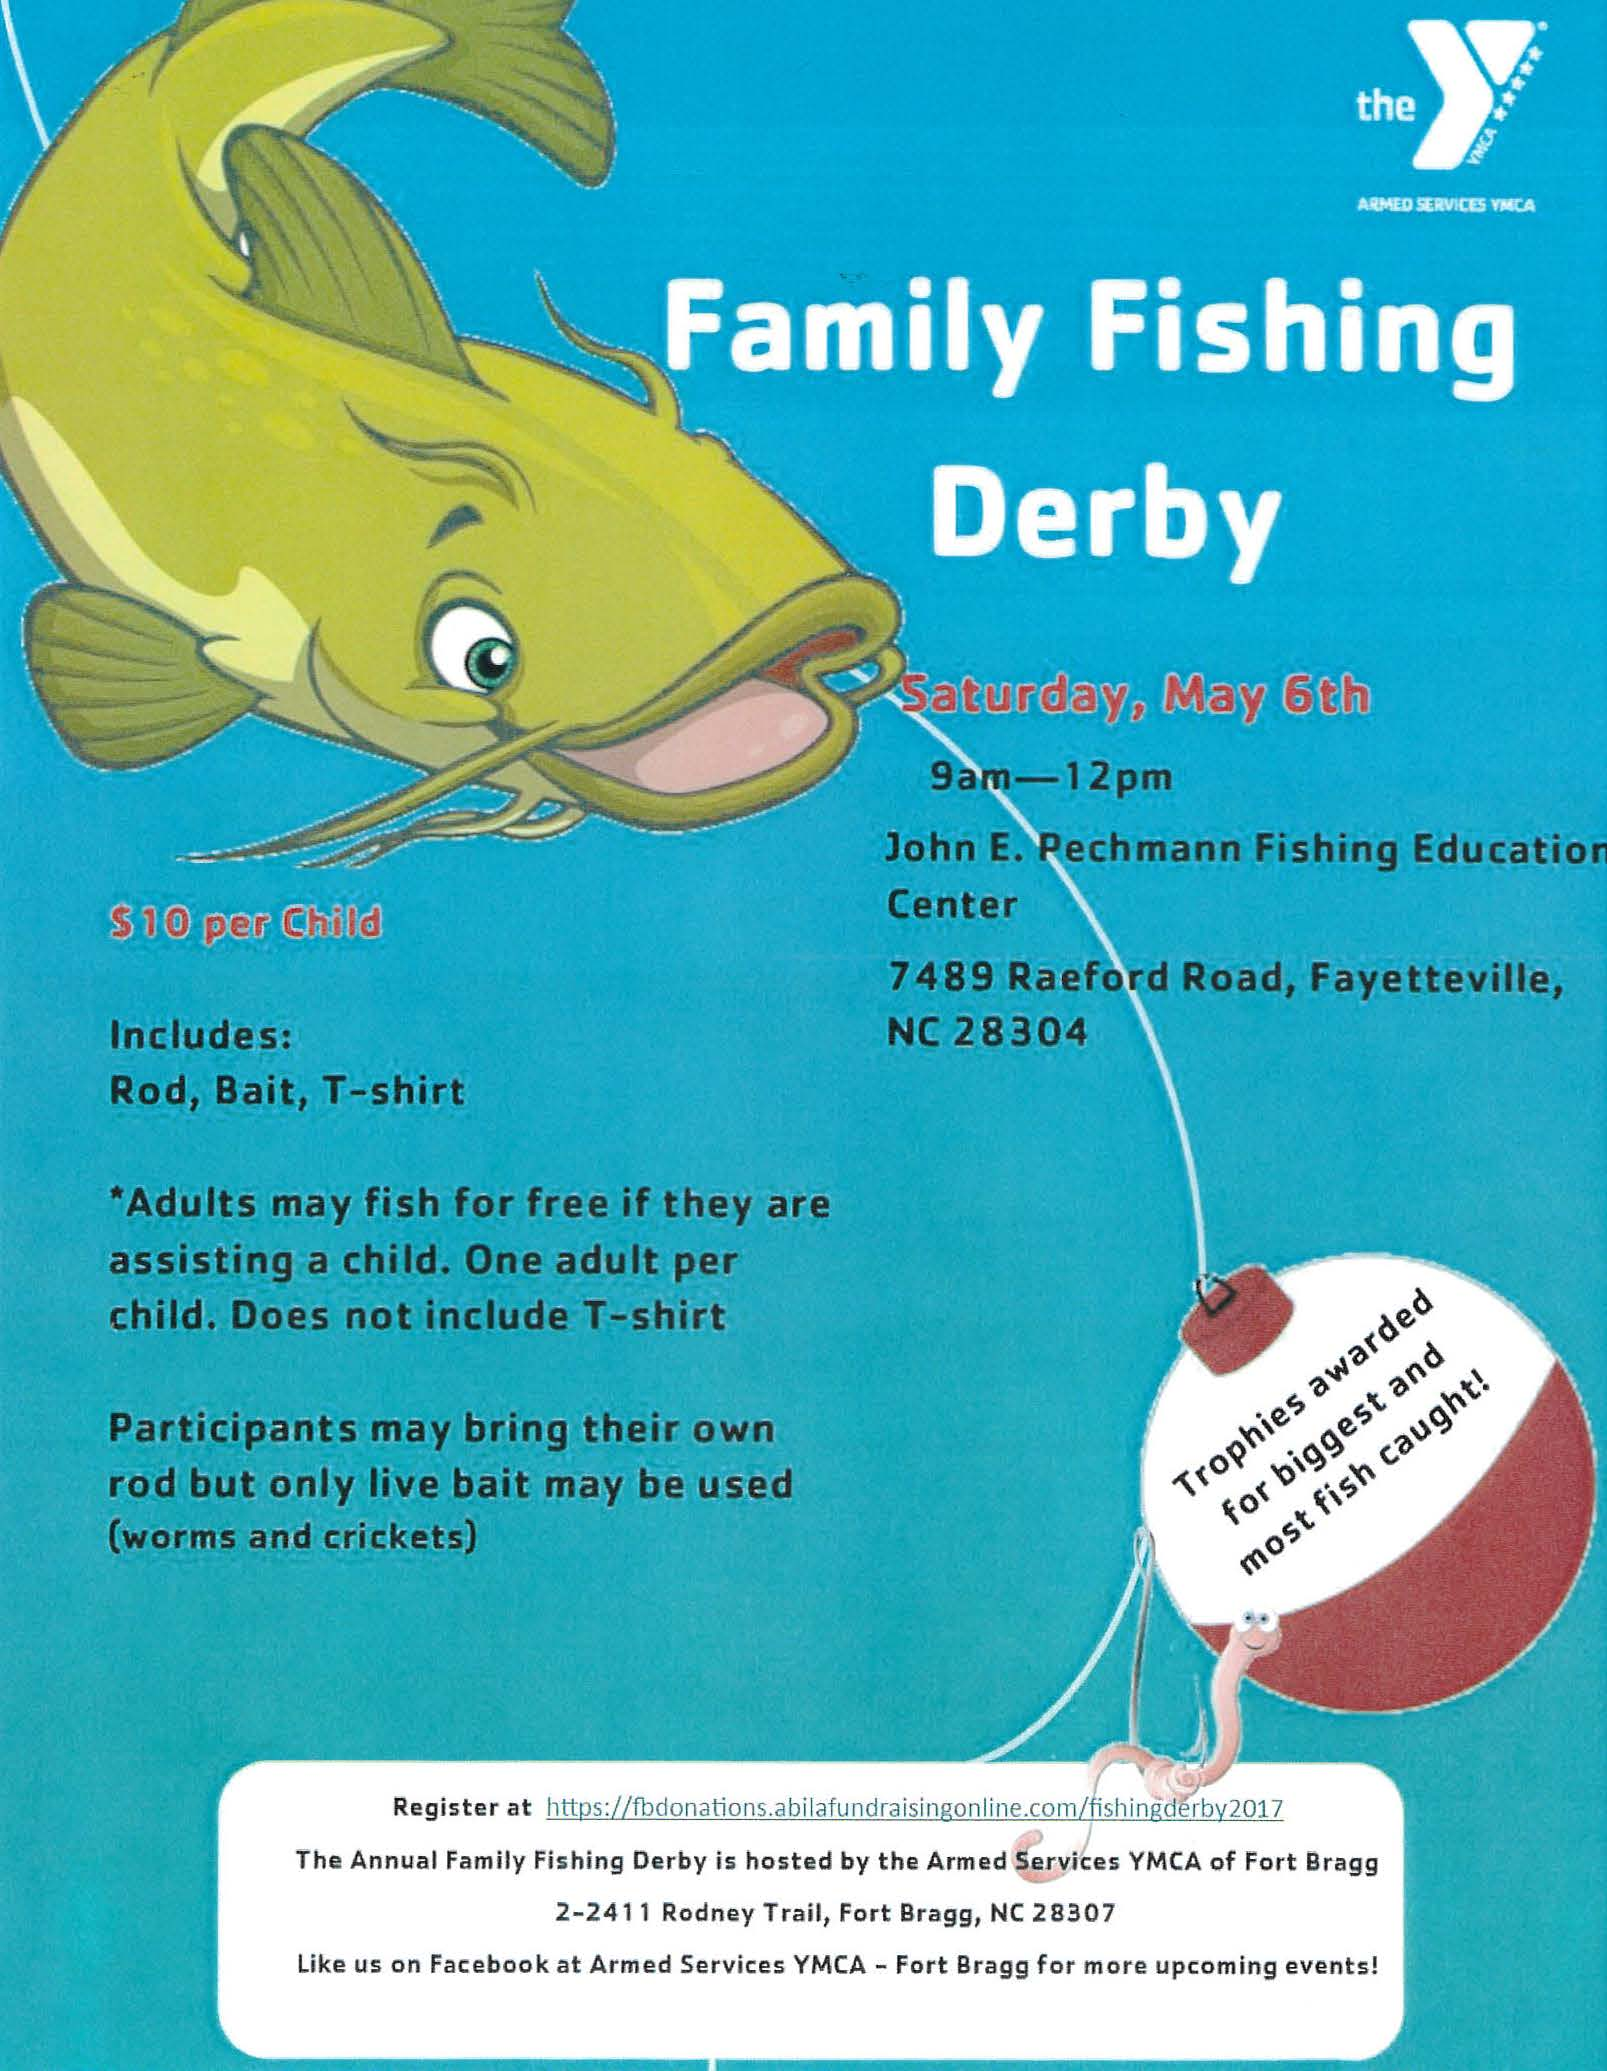 ONUS employees to volunteer at ASYMCA Family Fishing Derby